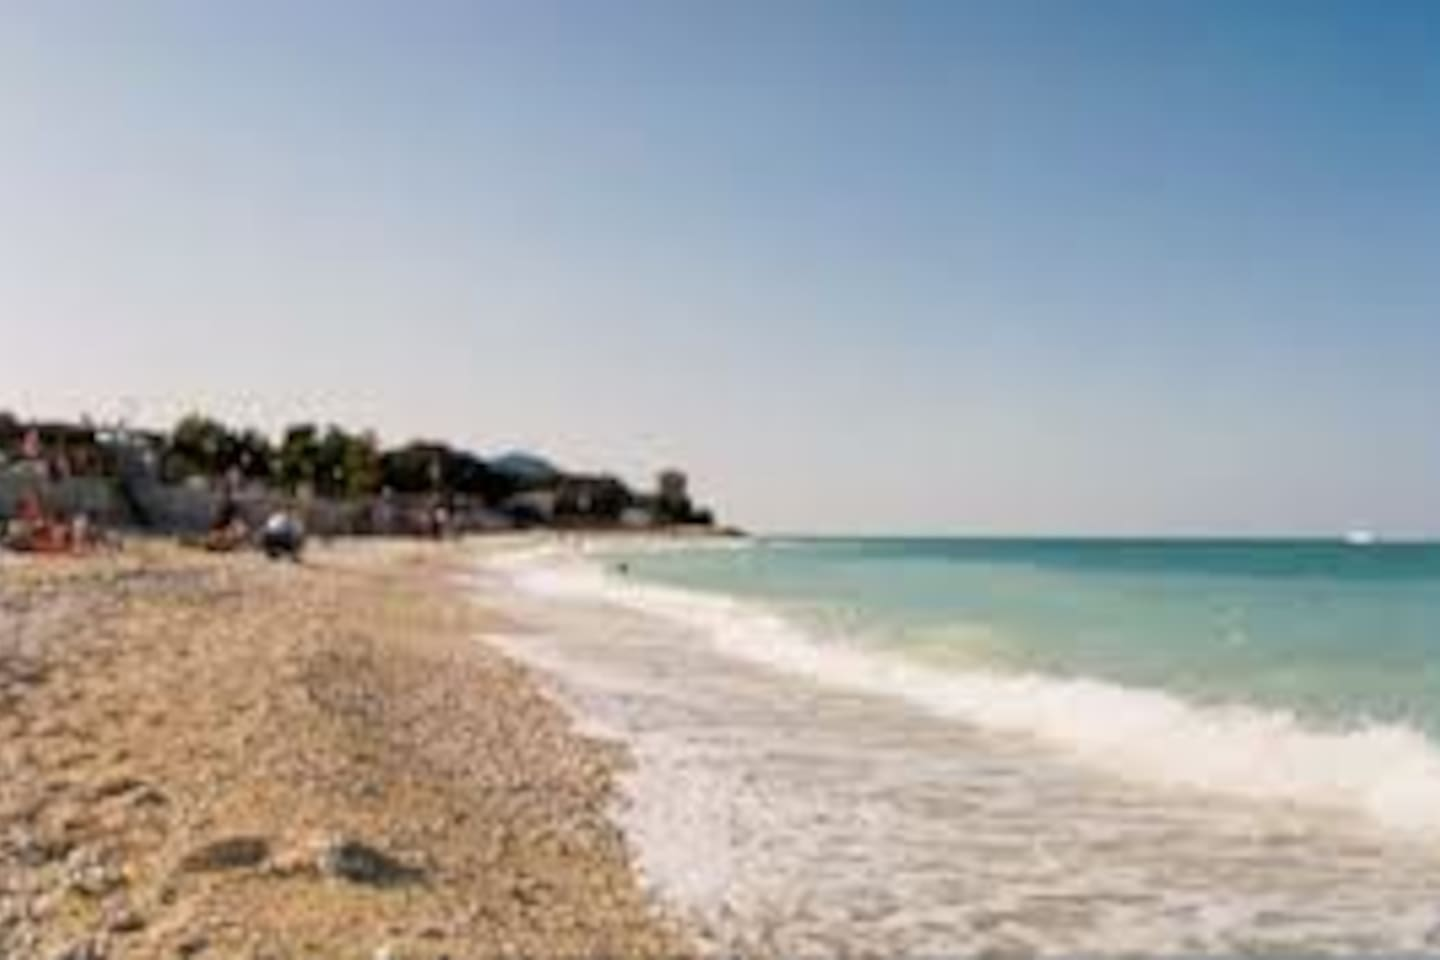 Beach Portonovo, 7 minutes by car from the house